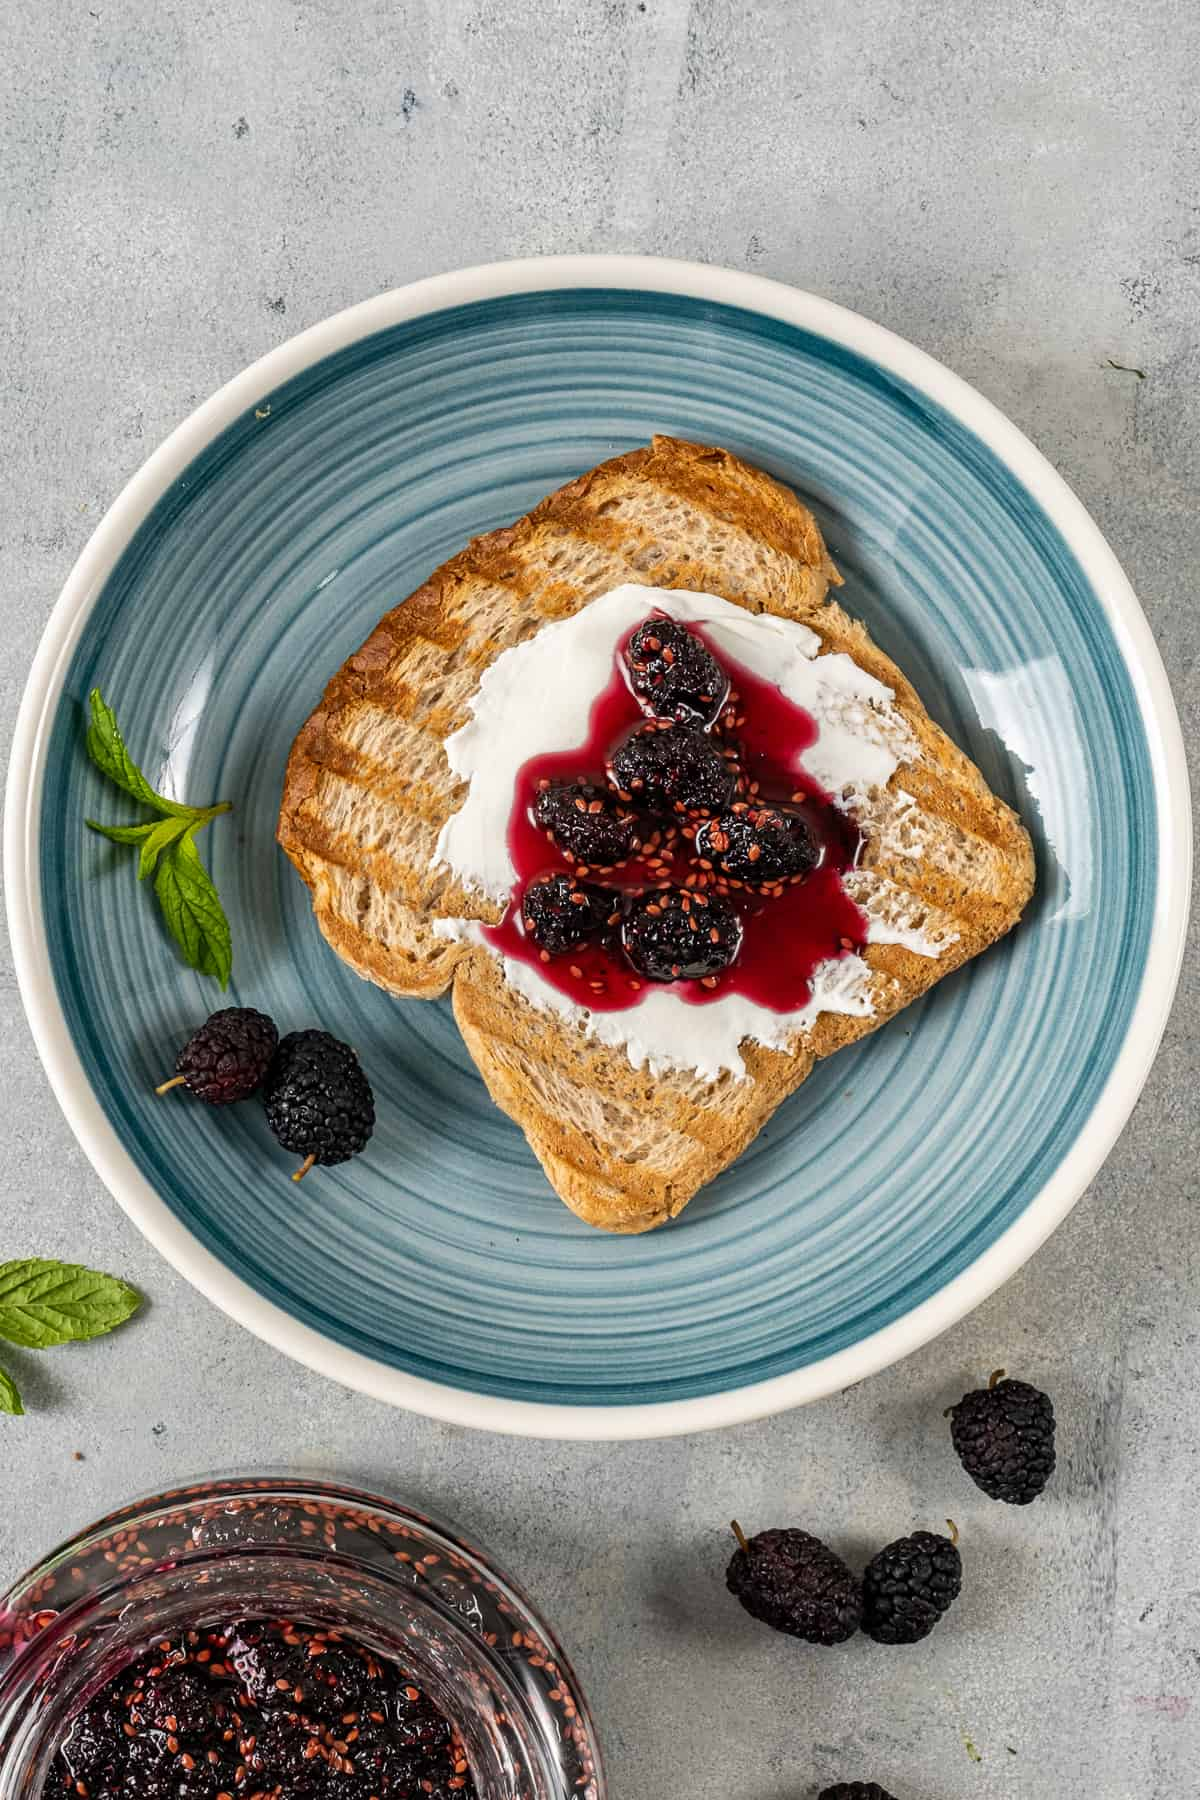 Toasted bread topped with cream cheese and mulberry jam on a blueish plate.